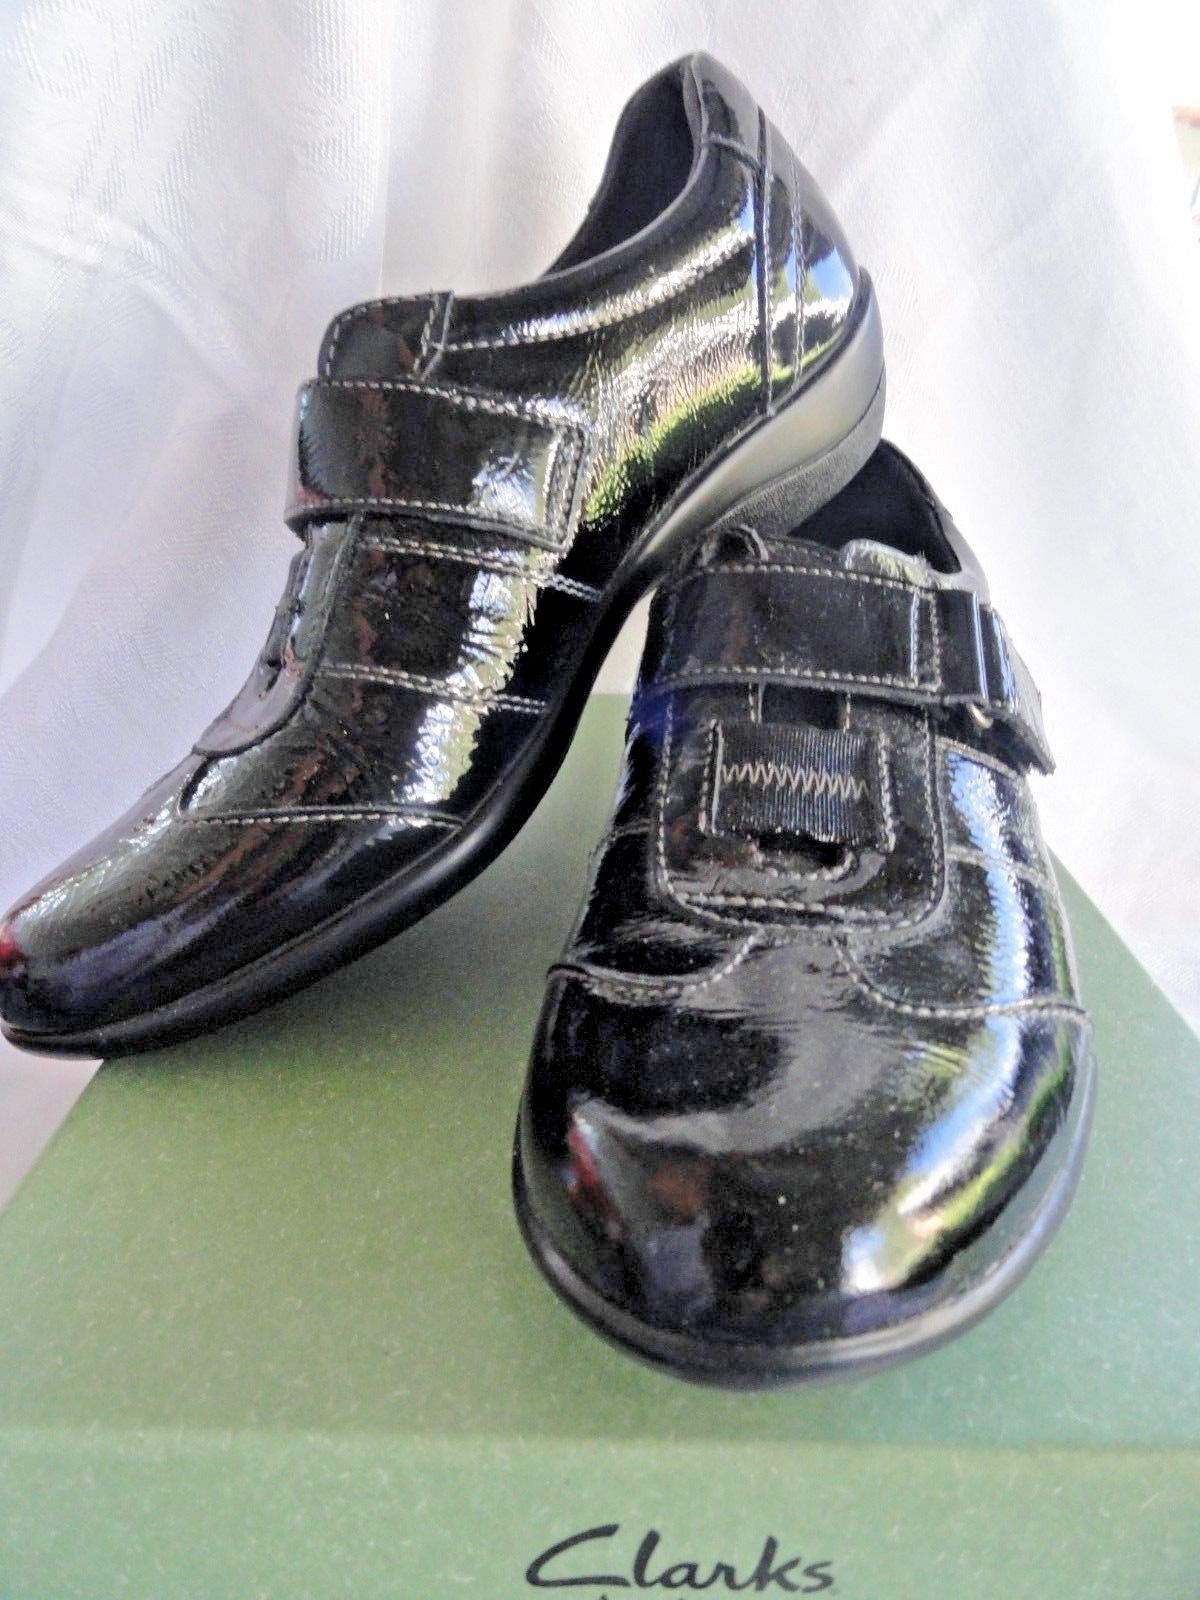 Womens black patent shoes, flat, Clarks Showoff Size 7.5 Narrow Excellent